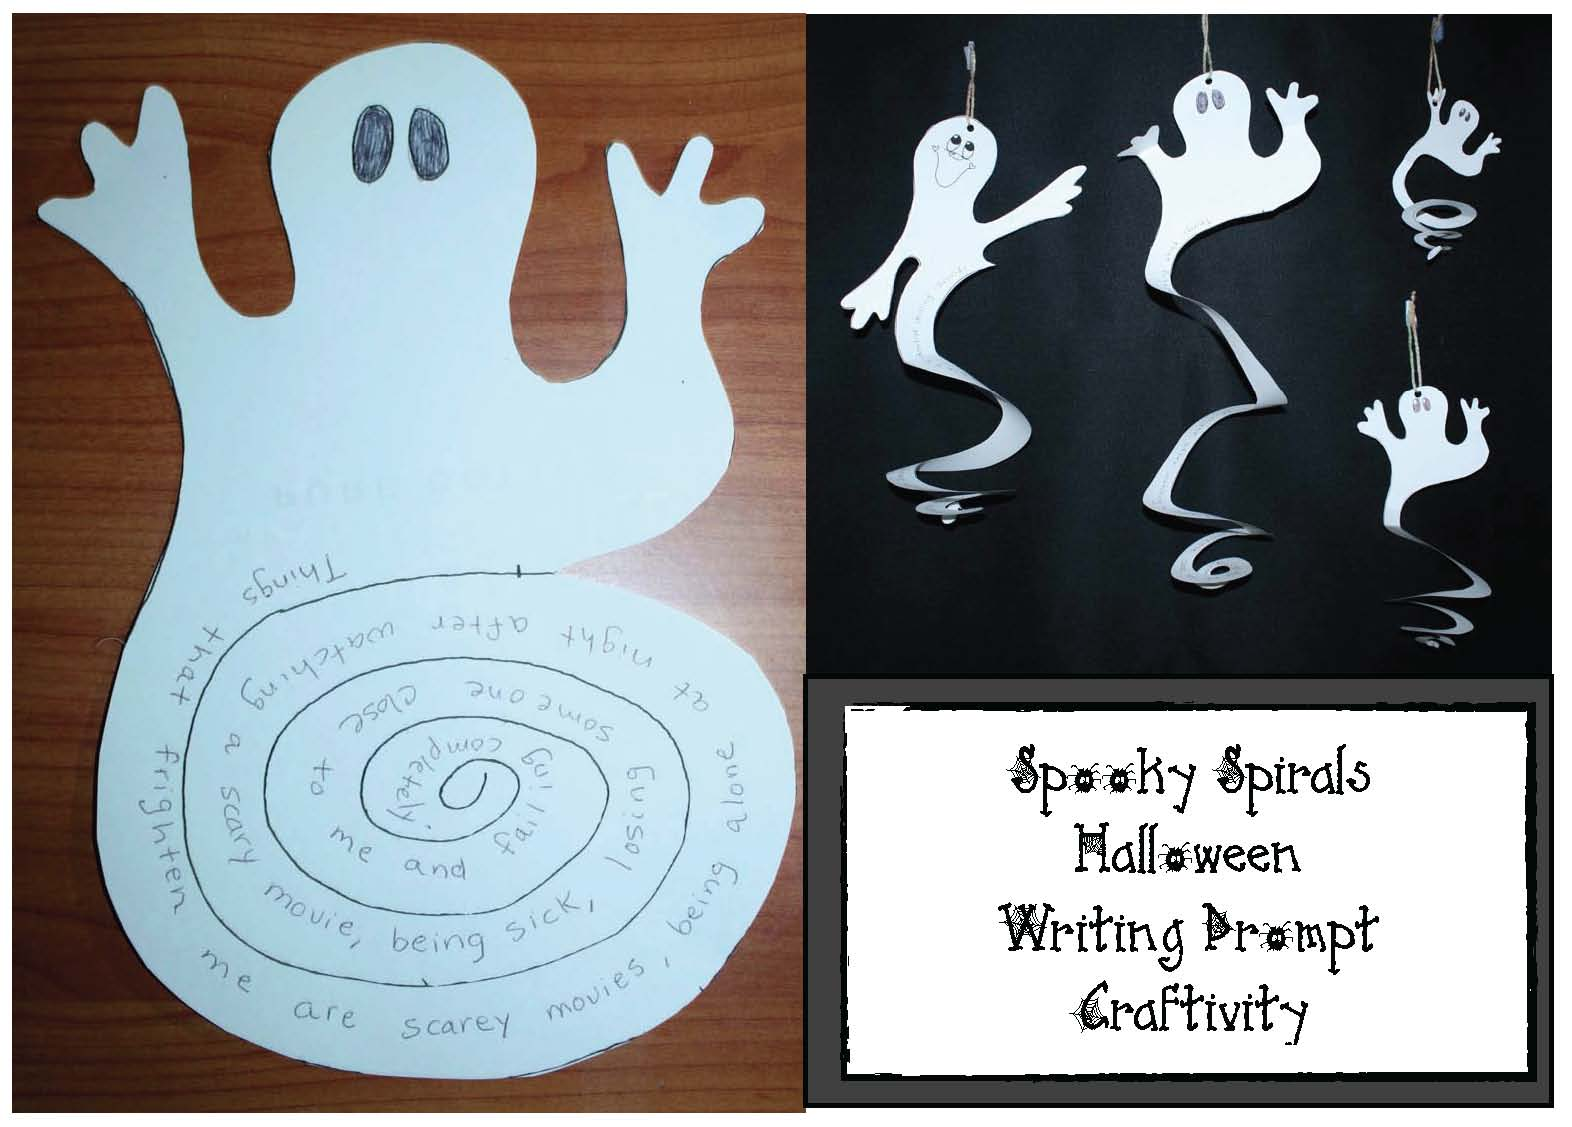 spooky spirals hallowen writing prompt craft, at family activities, Dolch sight word activities, Halloween activities, Halloween crafts, sight word crafts, sight word games, cat crafts, bat crafts, emergent reader, Halloween crafts that teach